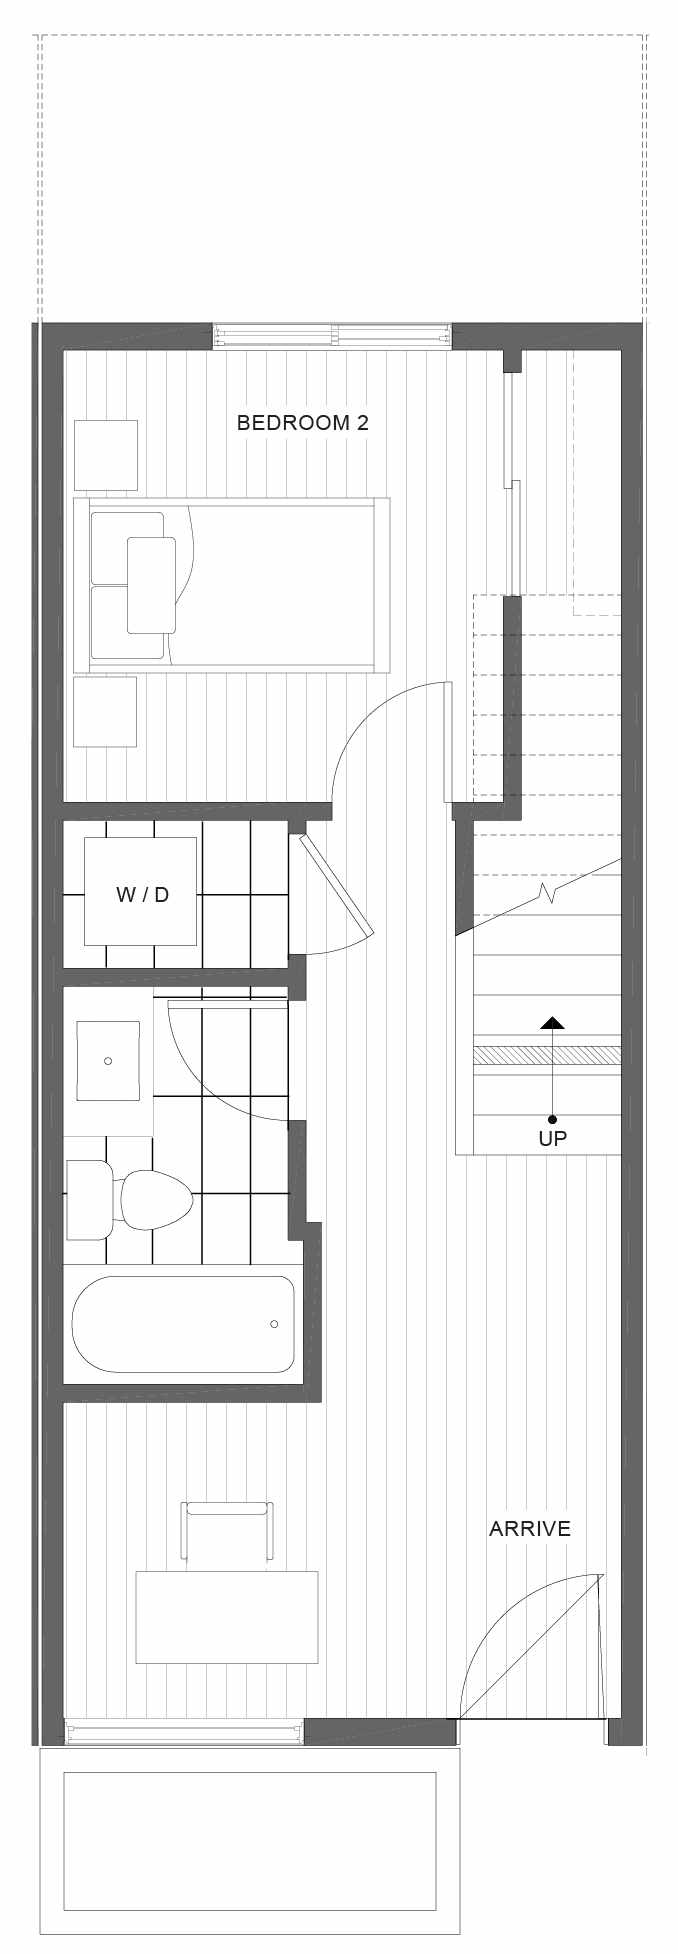 First Floor Plan of 1322 E Spring St of the Corazon II Townhomes